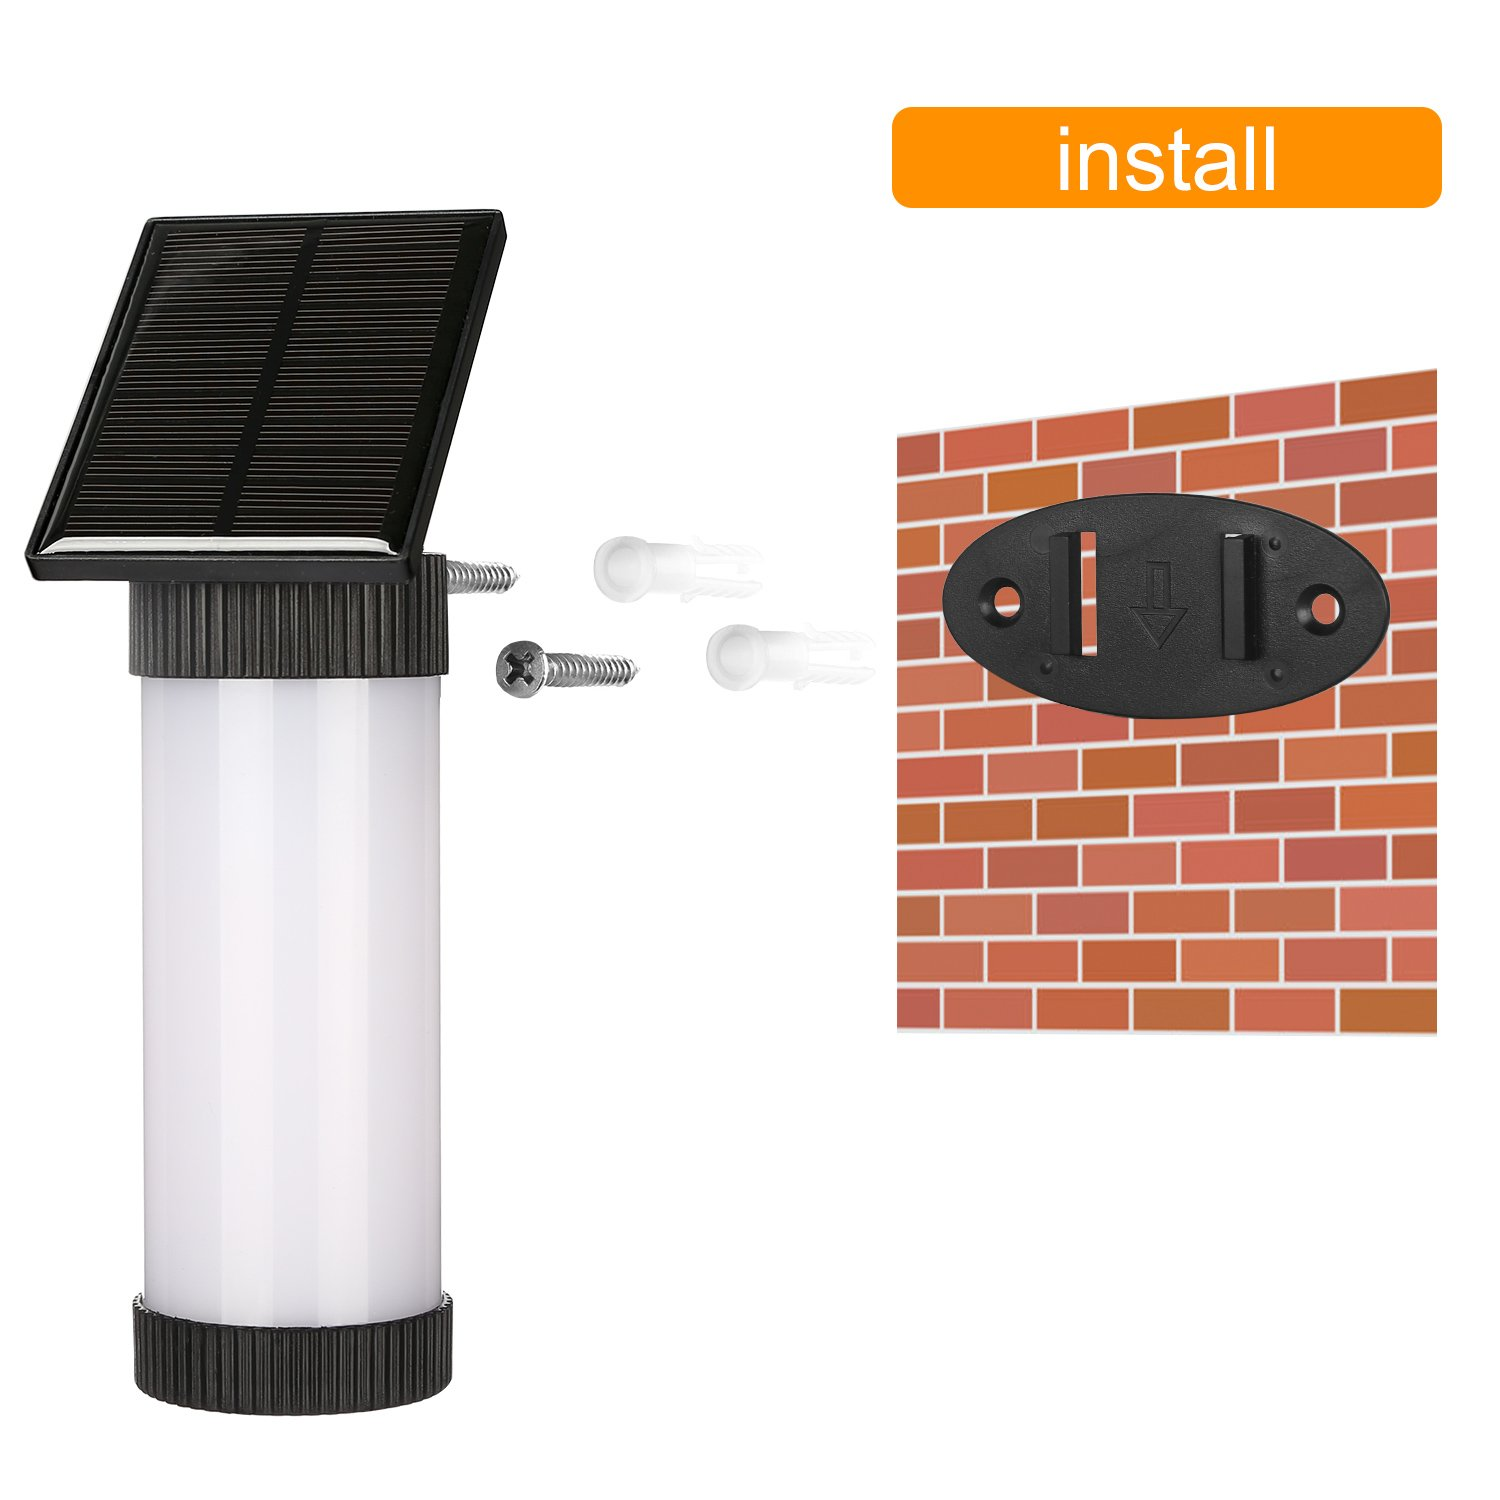 Guaiboshi Flame Lamp Luz al Aire libre Impermeable IP65 LED Lámpara Solar (2PACK)